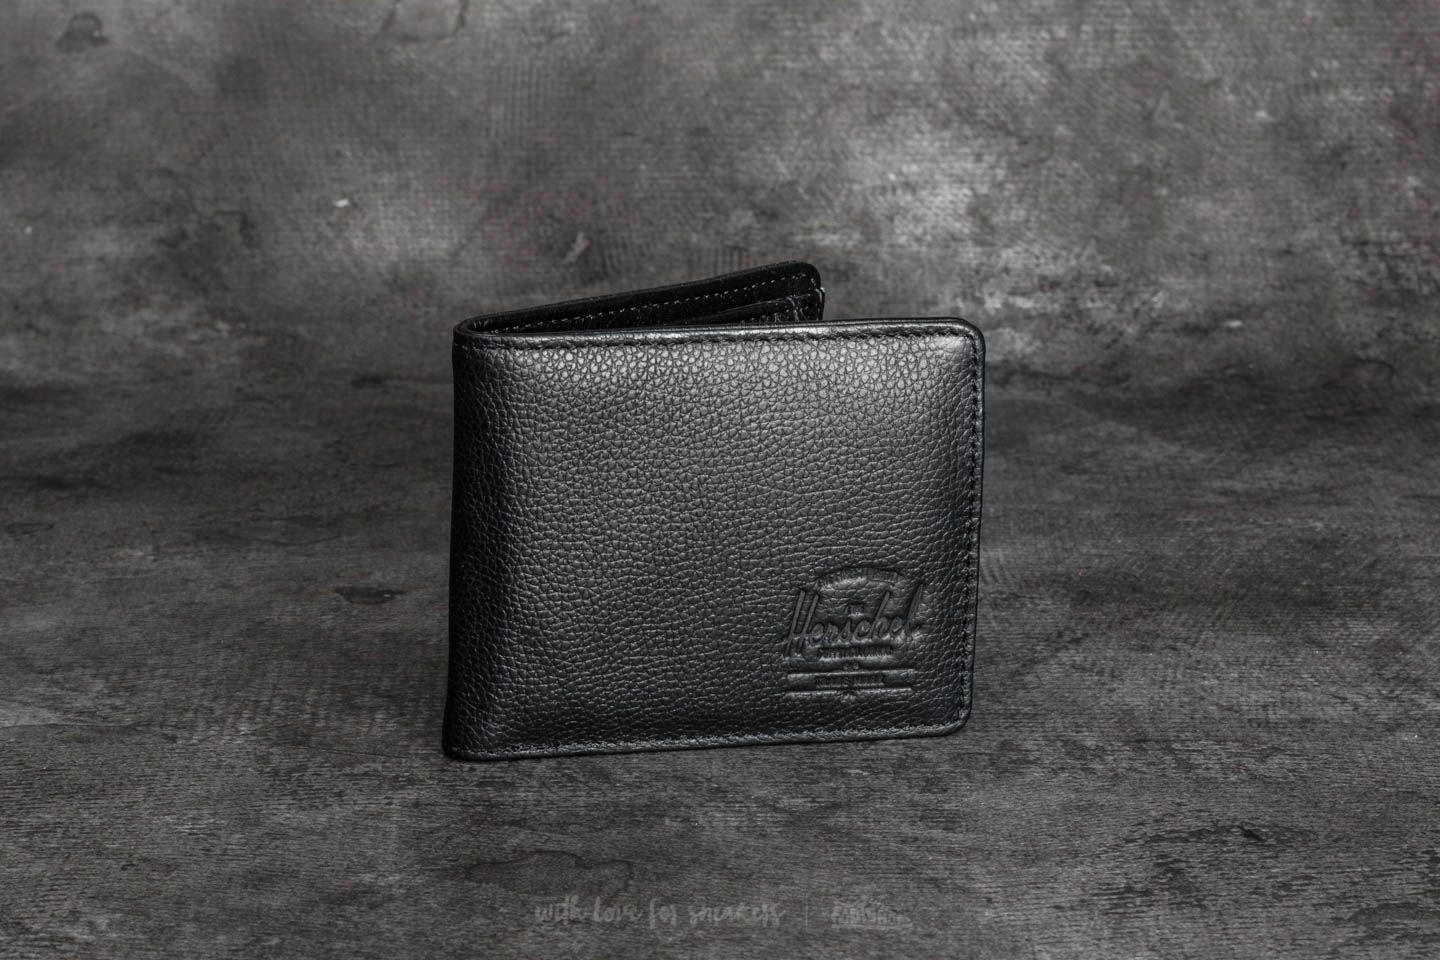 8546e6282ca6 Lyst - Herschel Supply Co. Hank + Coin Wallet Black Pebbled Leather ...